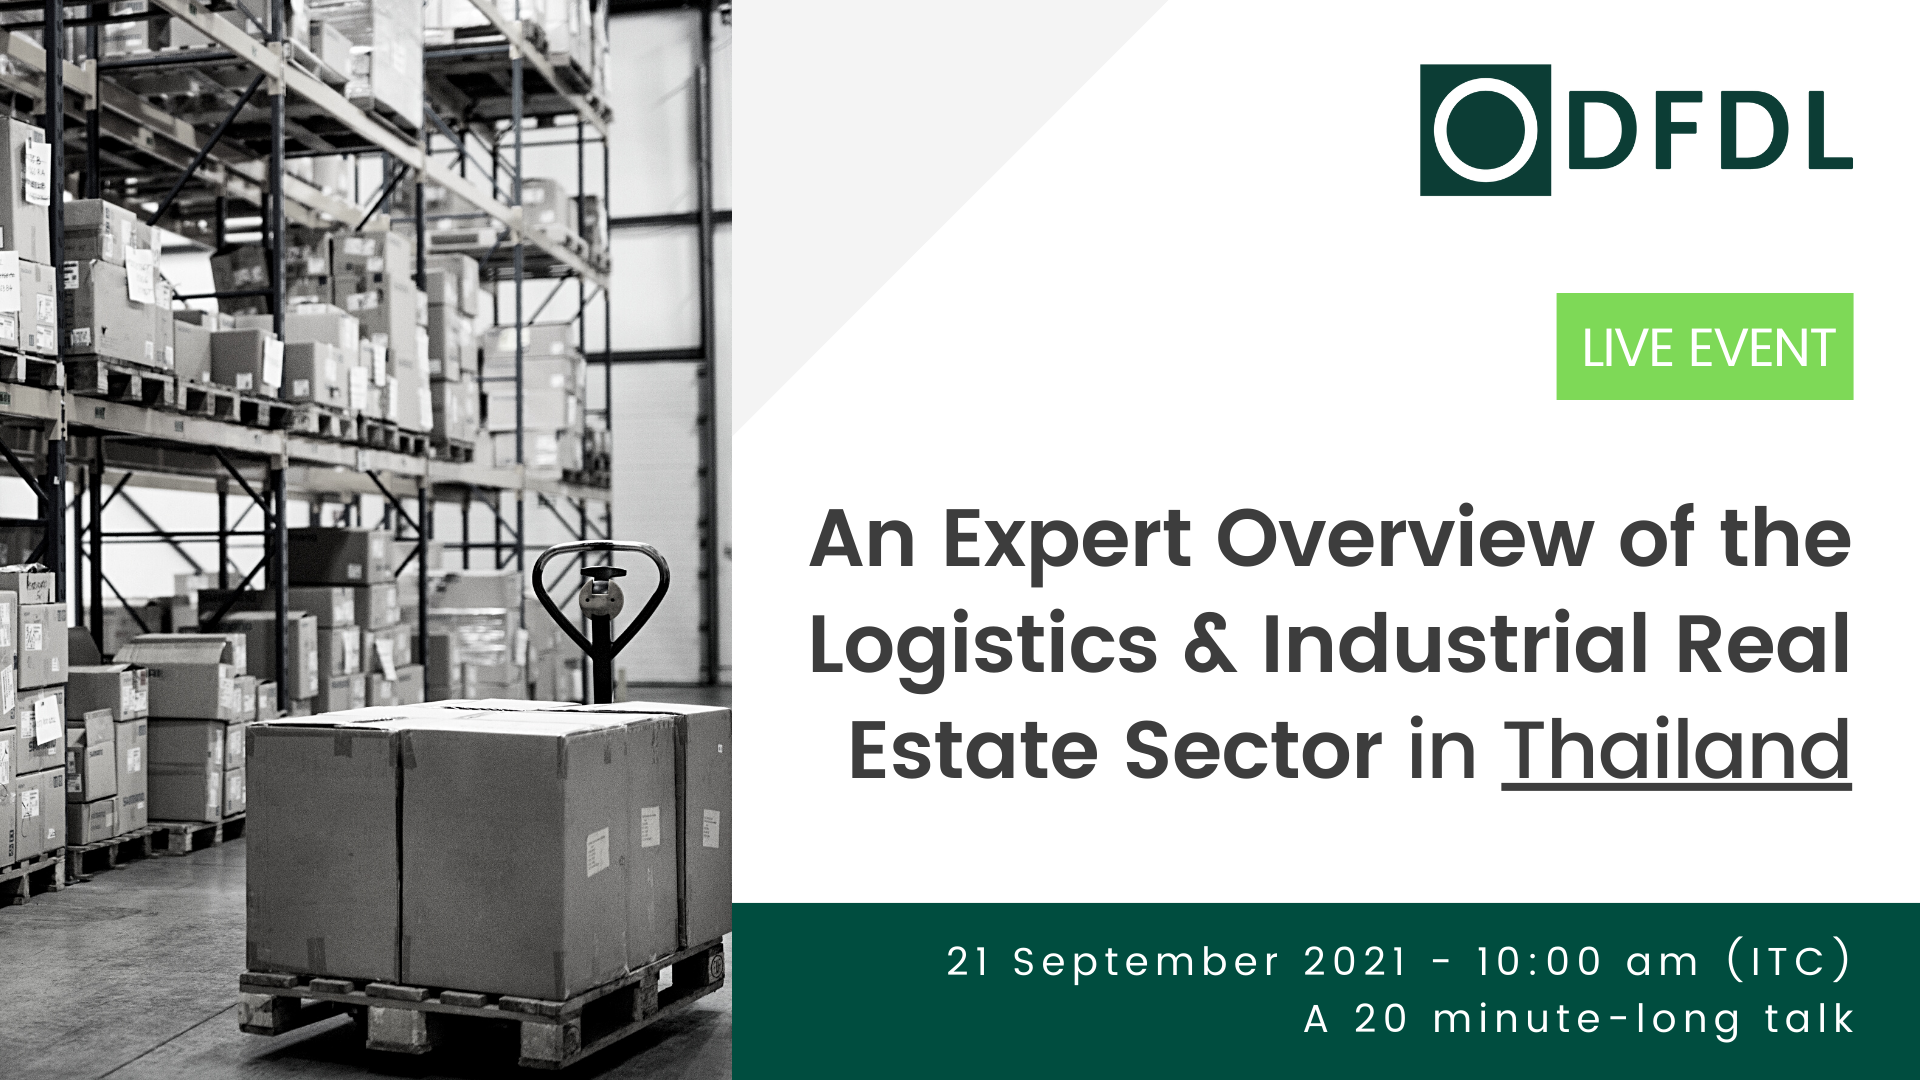 An Expert Overview of the Logistics & Industrial Real Estate Sector in Thailand